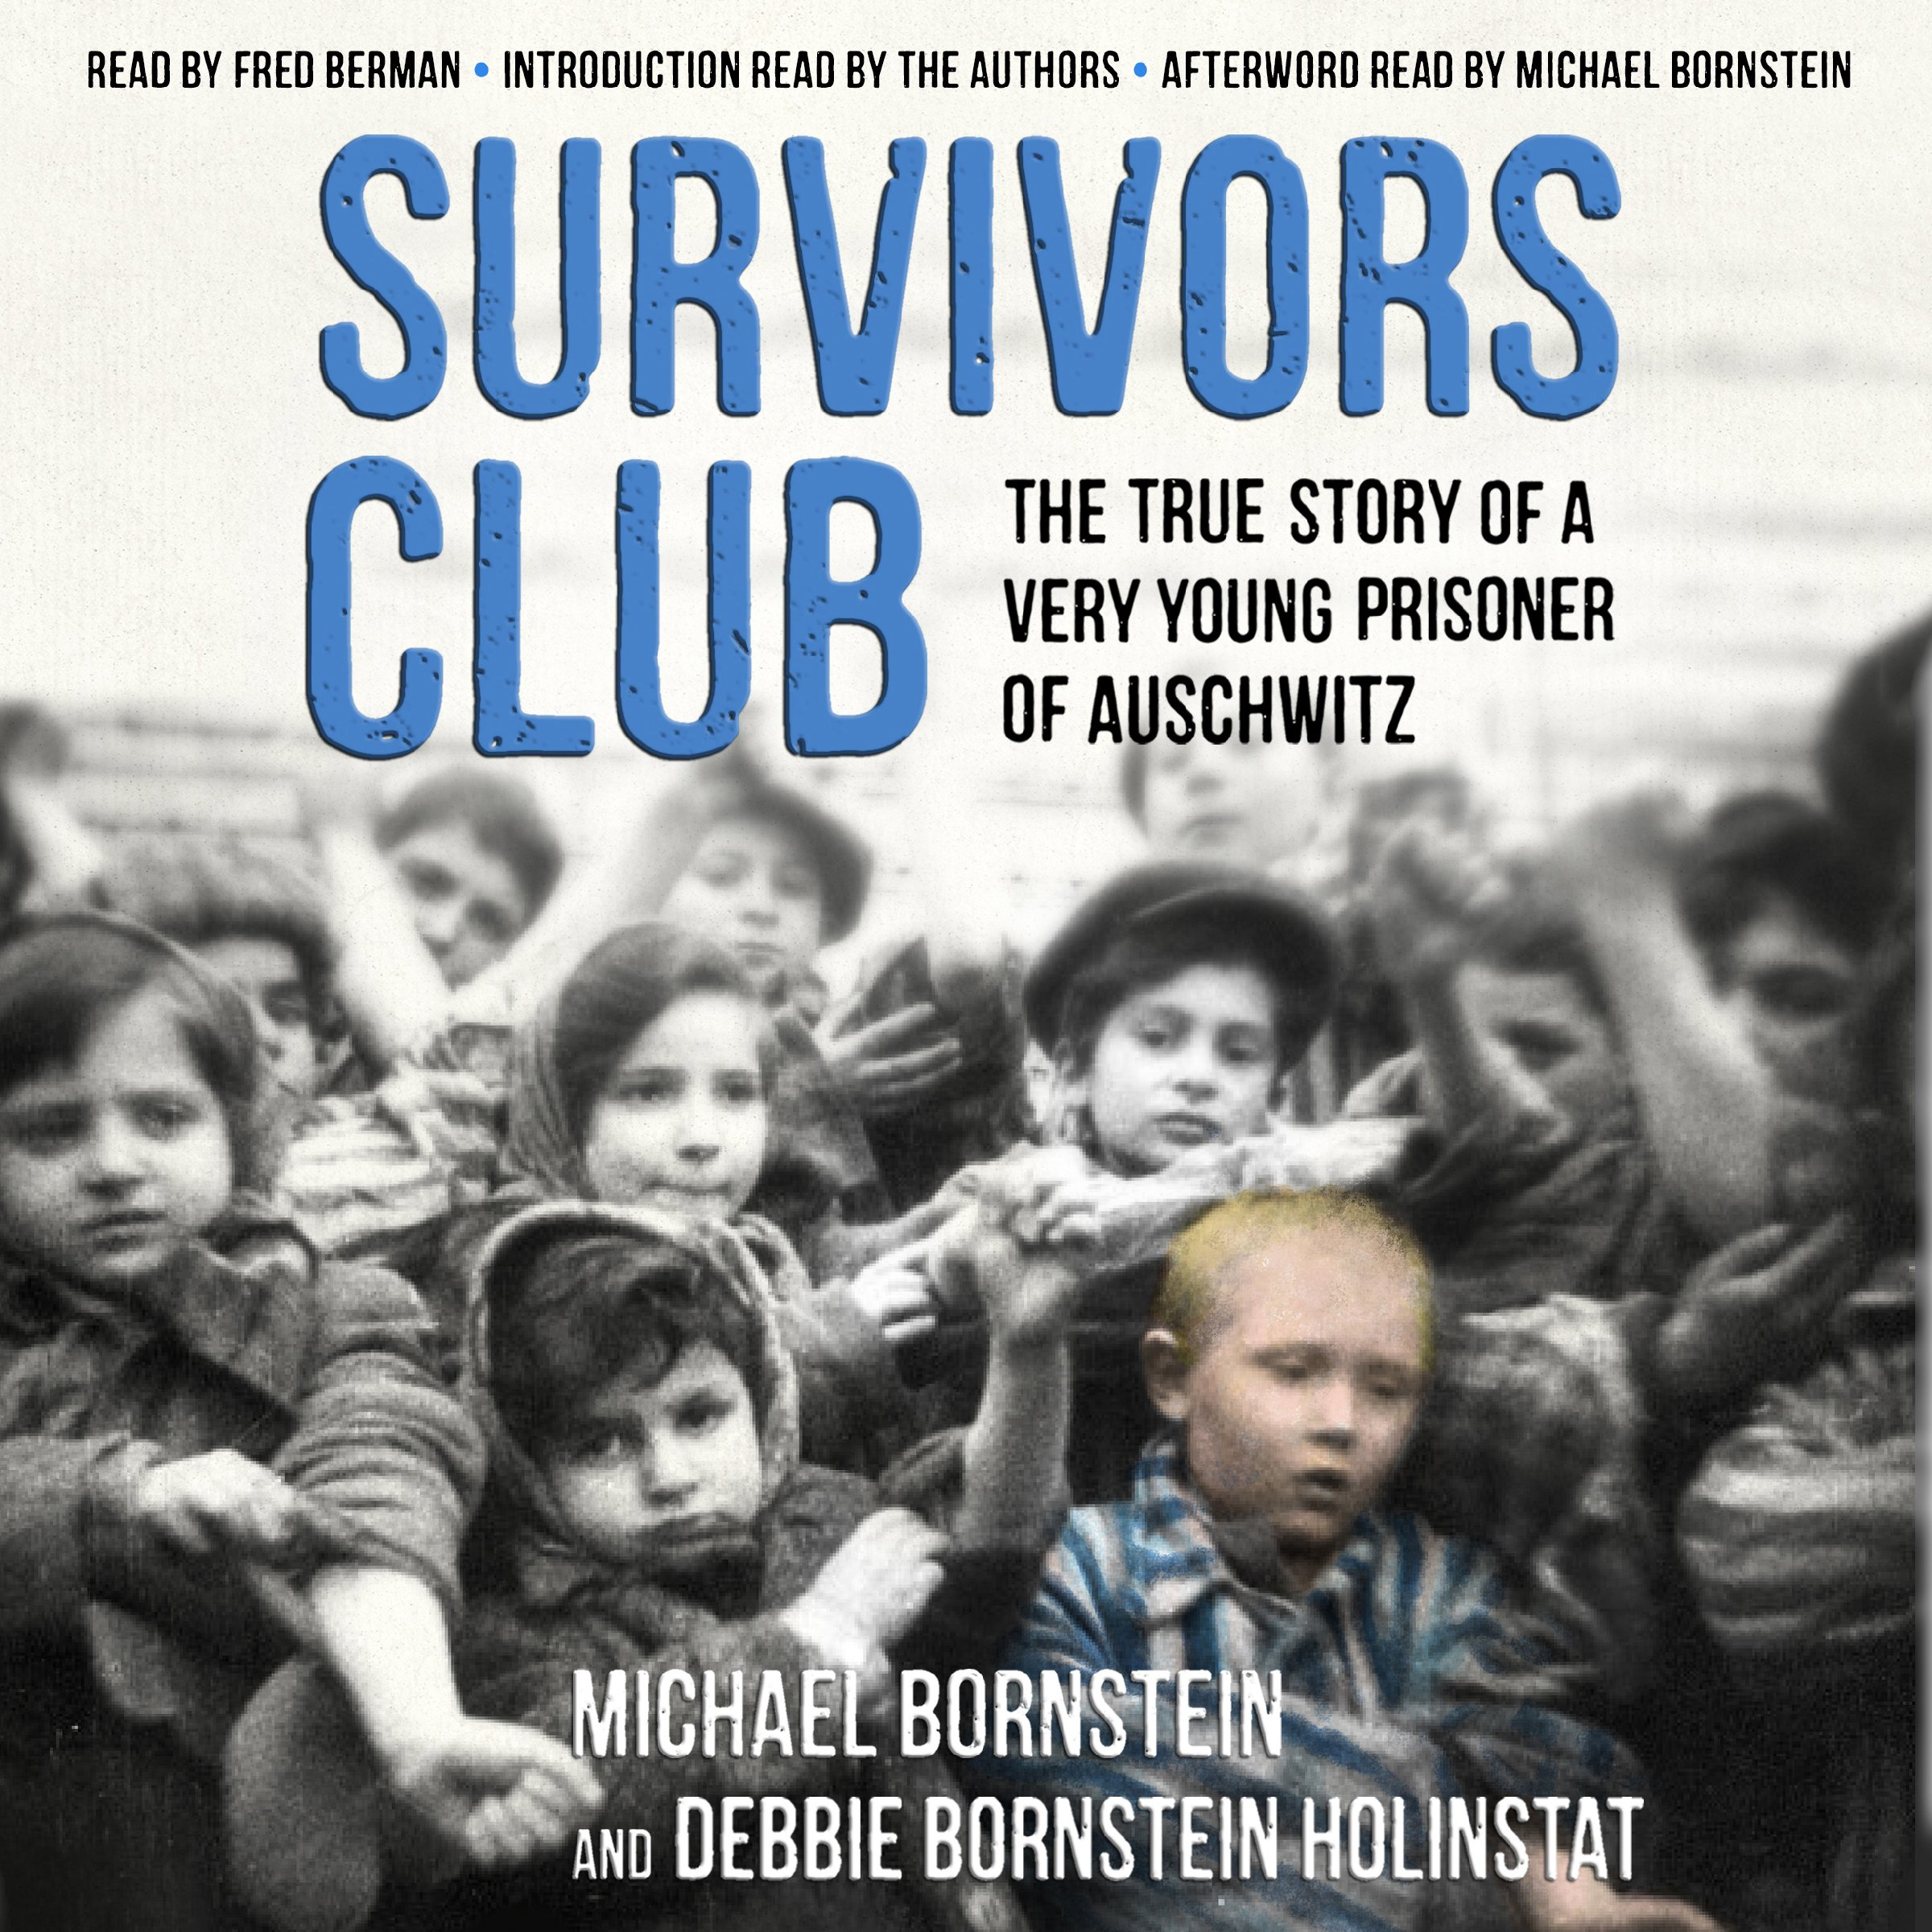 Survivors Club  The True Story Of A Very Young Prisoner Of Auschwitz